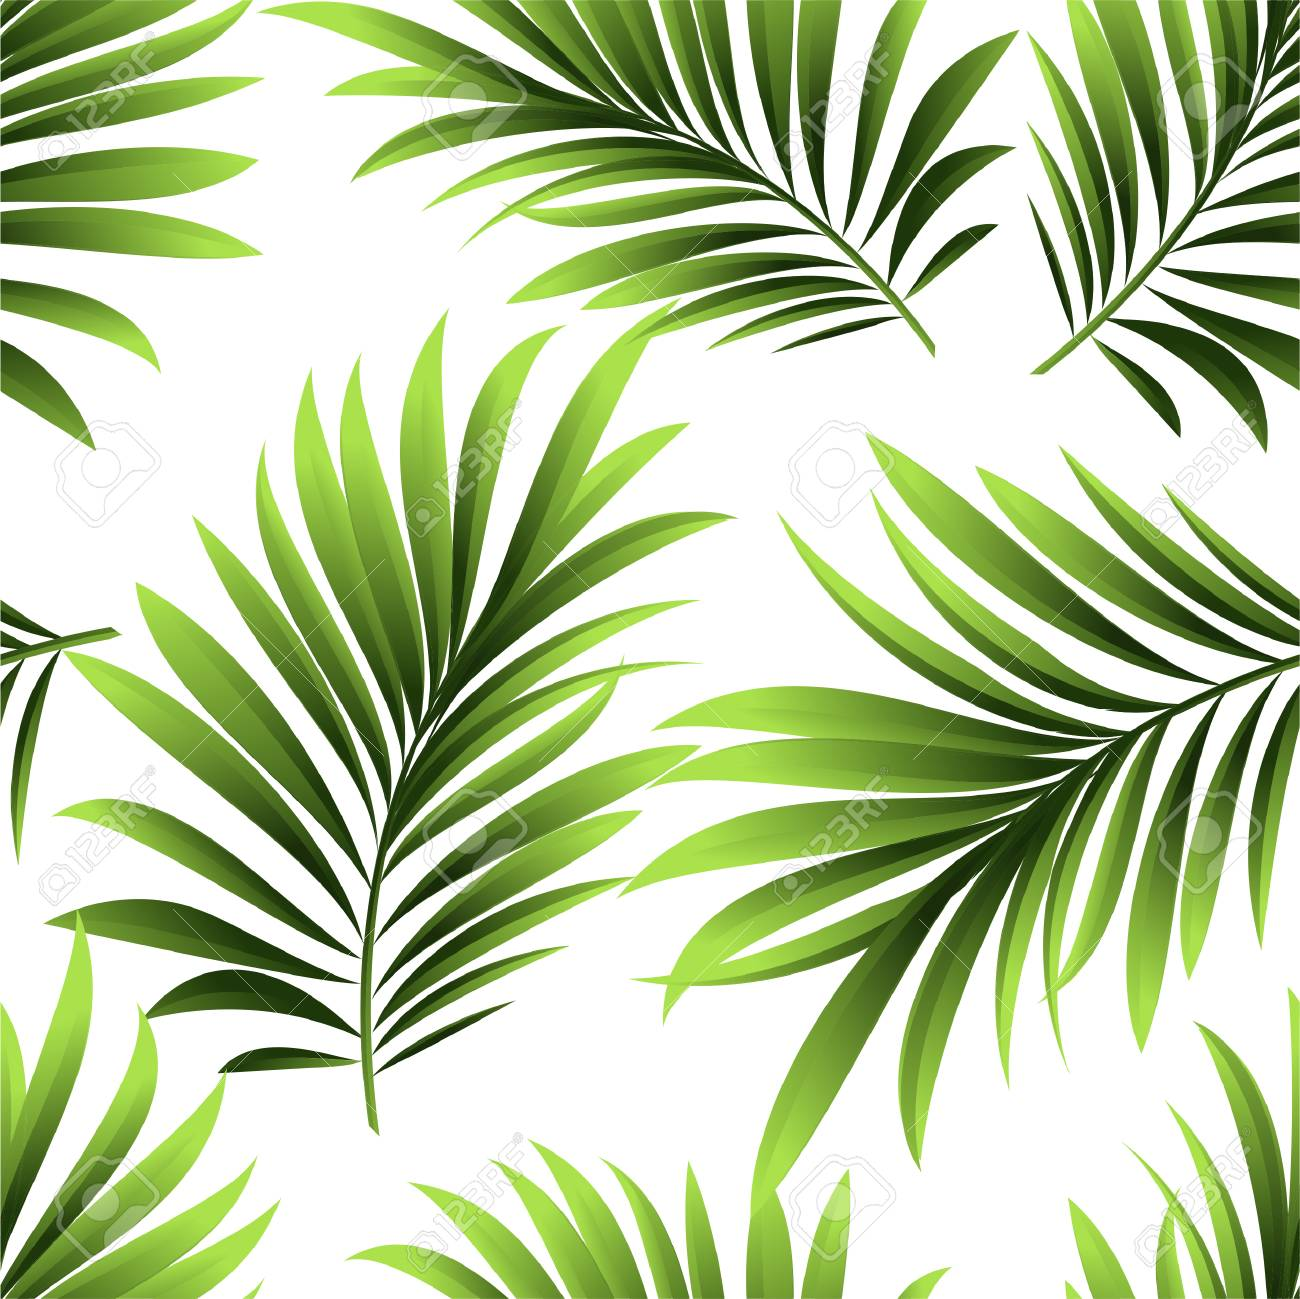 Seamless Pattern With Fresh Green Tropical Palm Tree Leaves And Royalty Free Cliparts Vectors And Stock Illustration Image 84855208